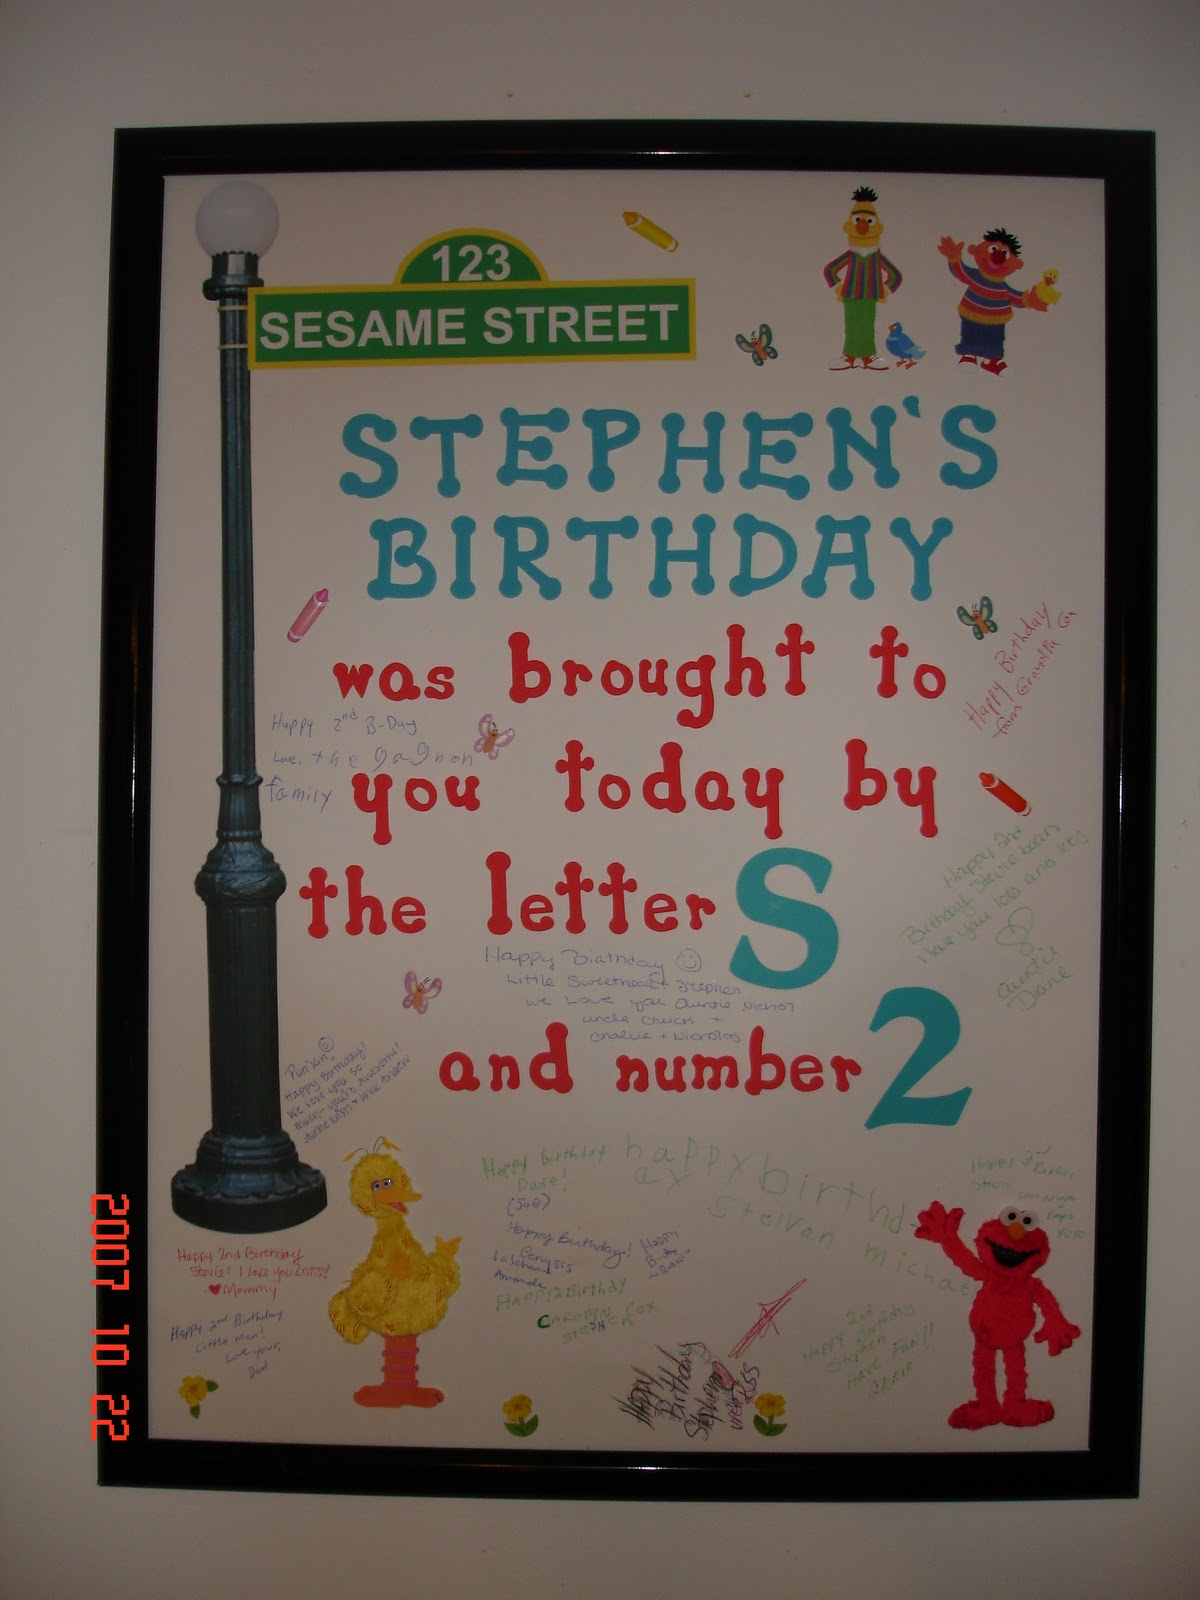 Valentine Party Game besides Sesame Street Birthday likewise Horror Movie Trivia also Eddie Redmayne Wins Best Acting Oscar 2015 Academy Awards further Printable Hollywood Sweet Sixteen Ticket. on oscar party prizes